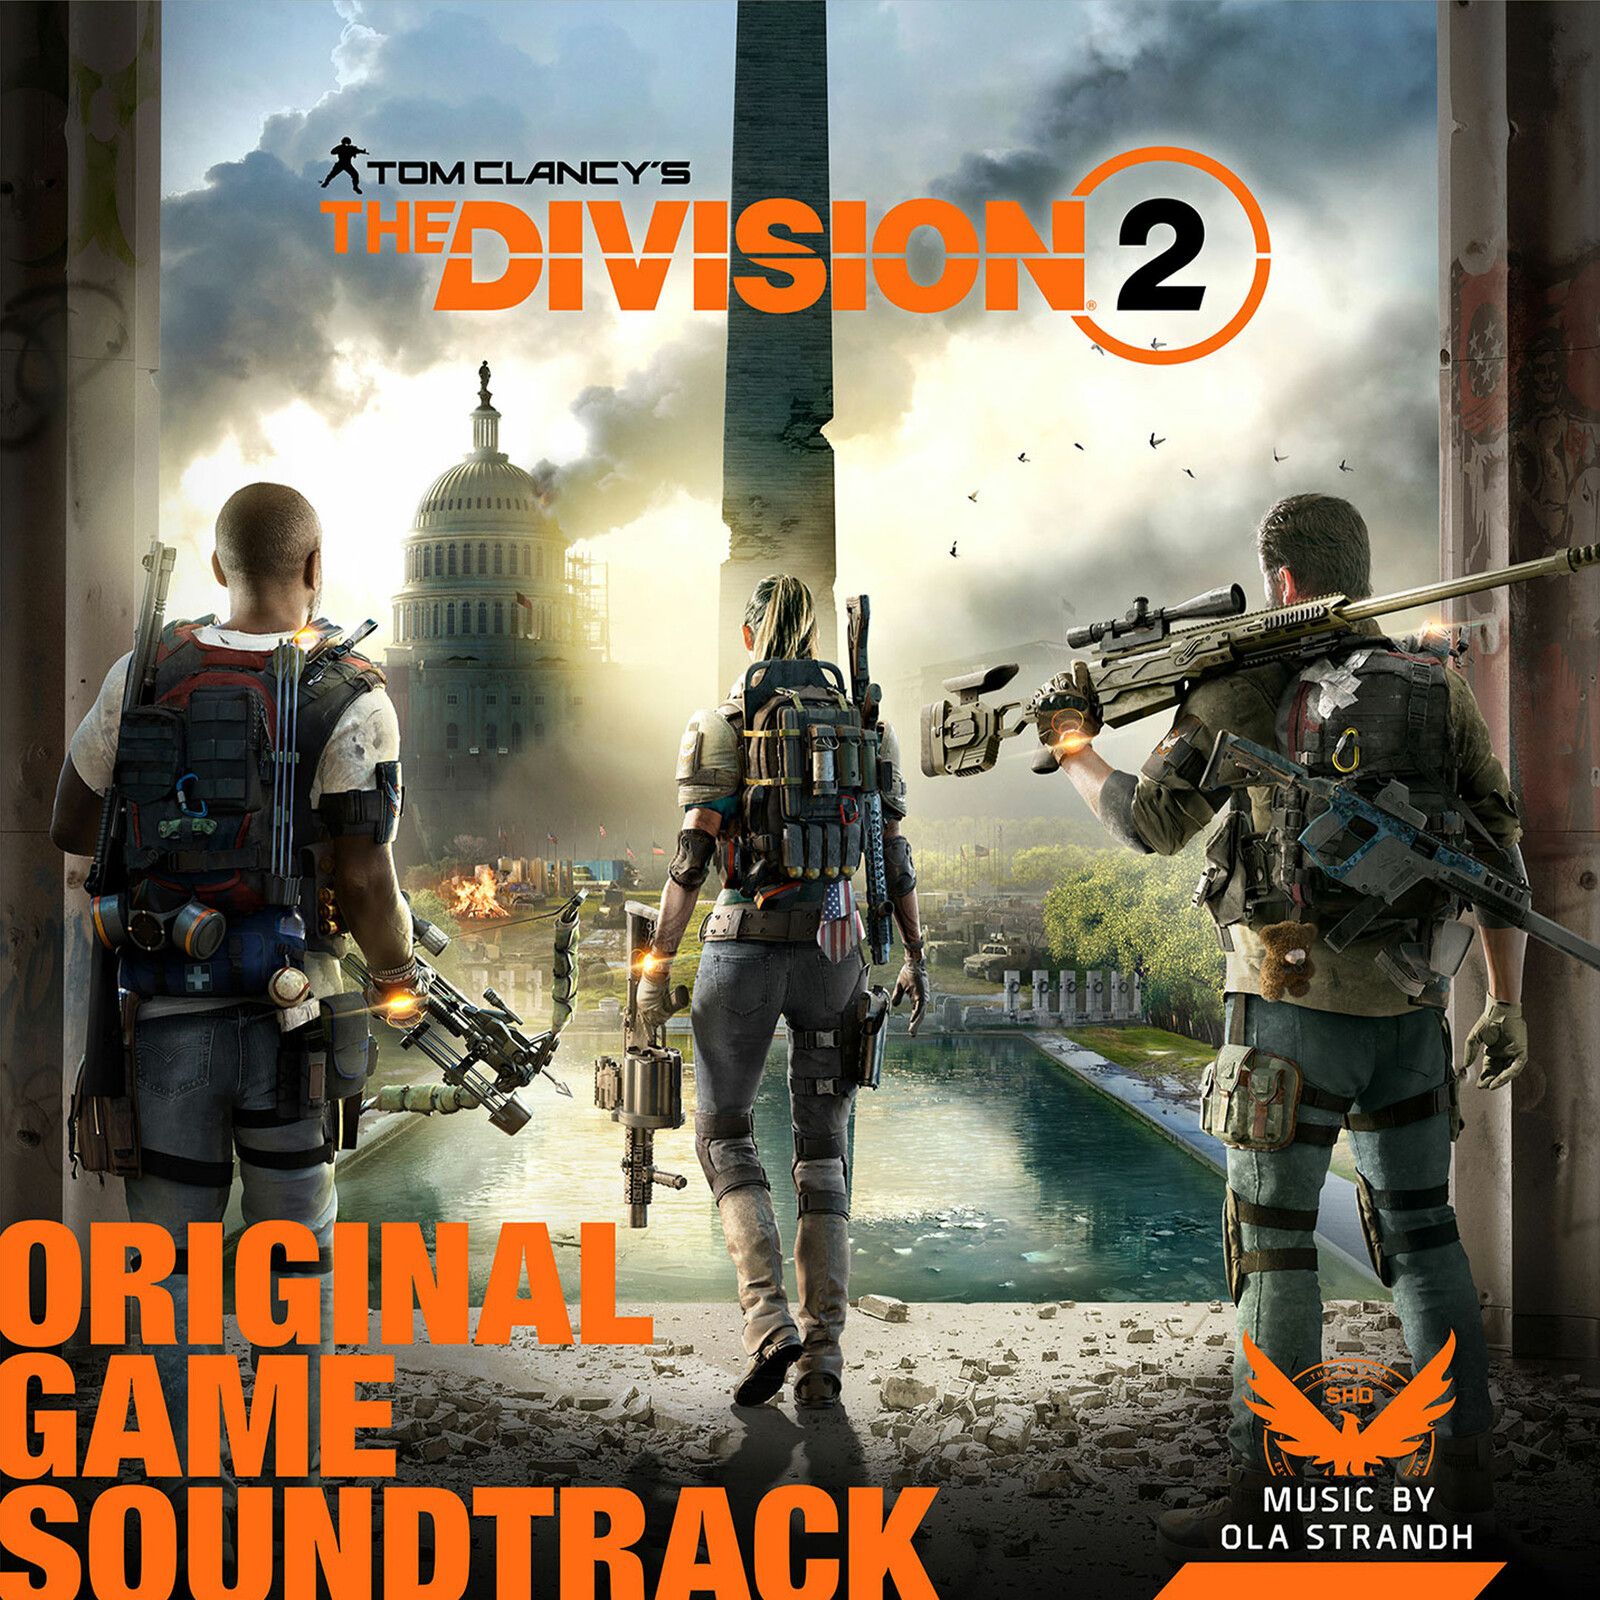 Massive Entertainment - The Division 2 - Soundtrack Cover and banners for social media